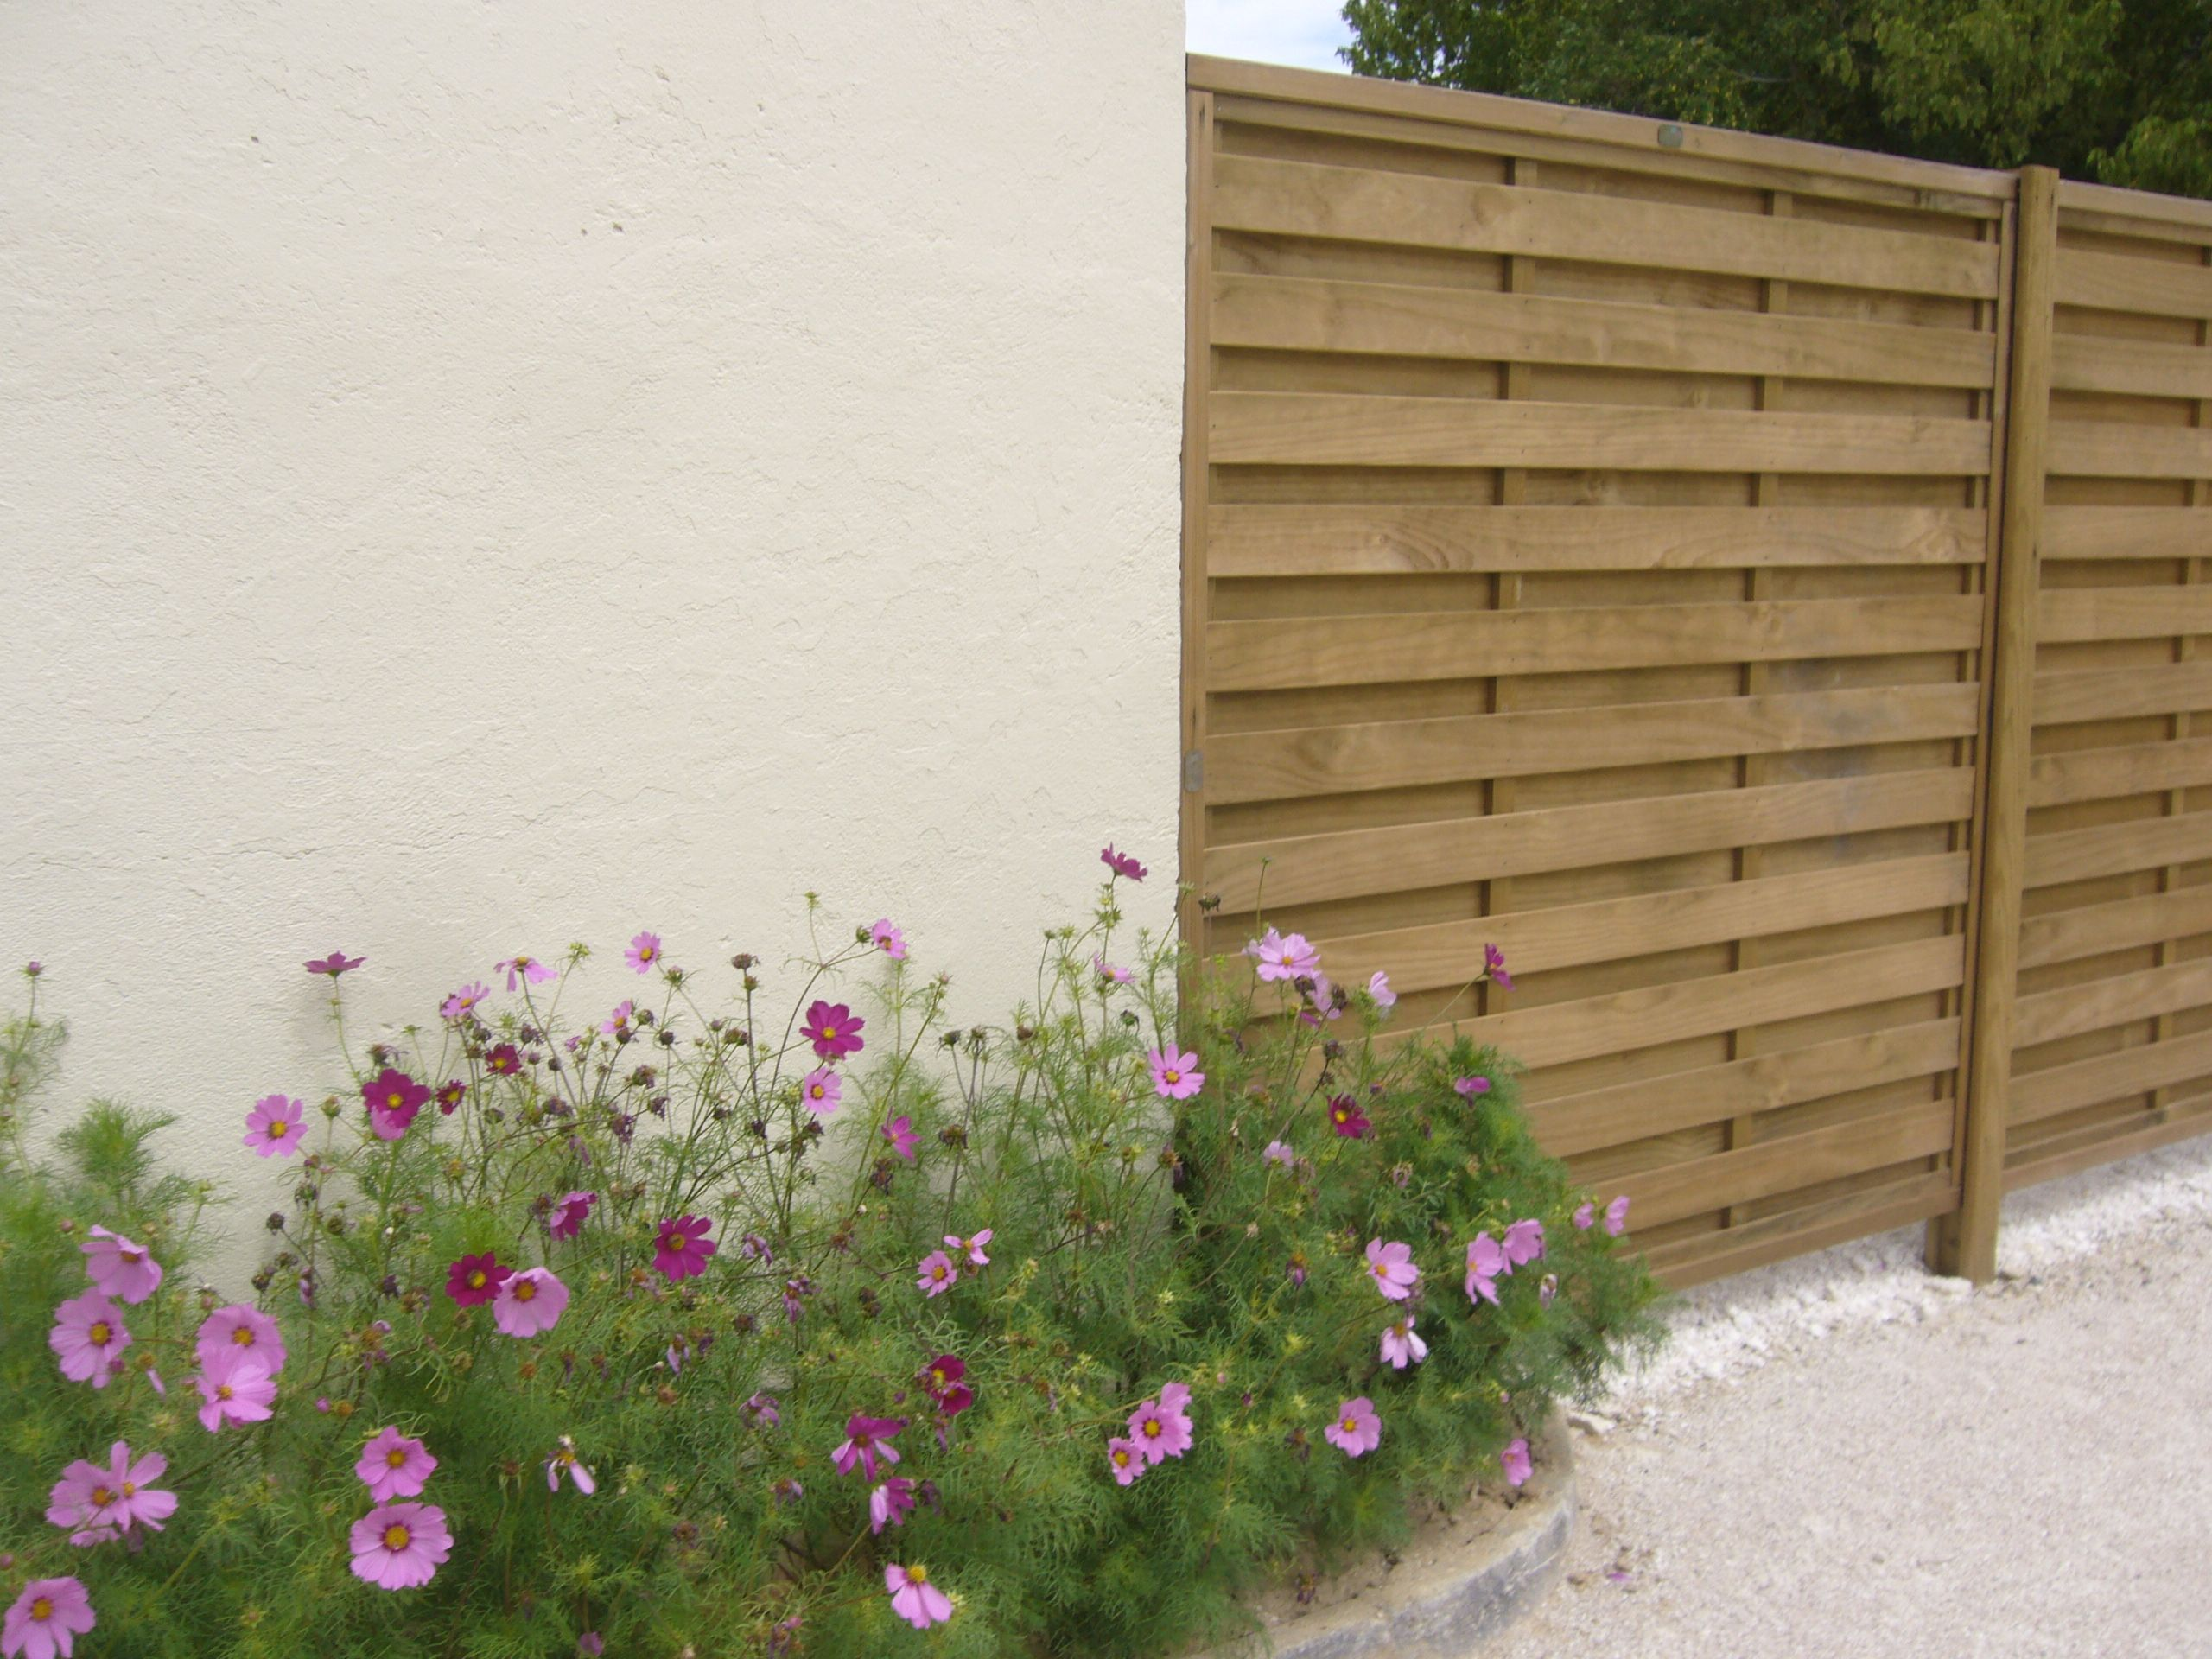 Jacksons horizontal hit and miss fence panels panels have a jacksons horizontal hit and miss fence panels panels have a profiled timber frame not baanklon Choice Image